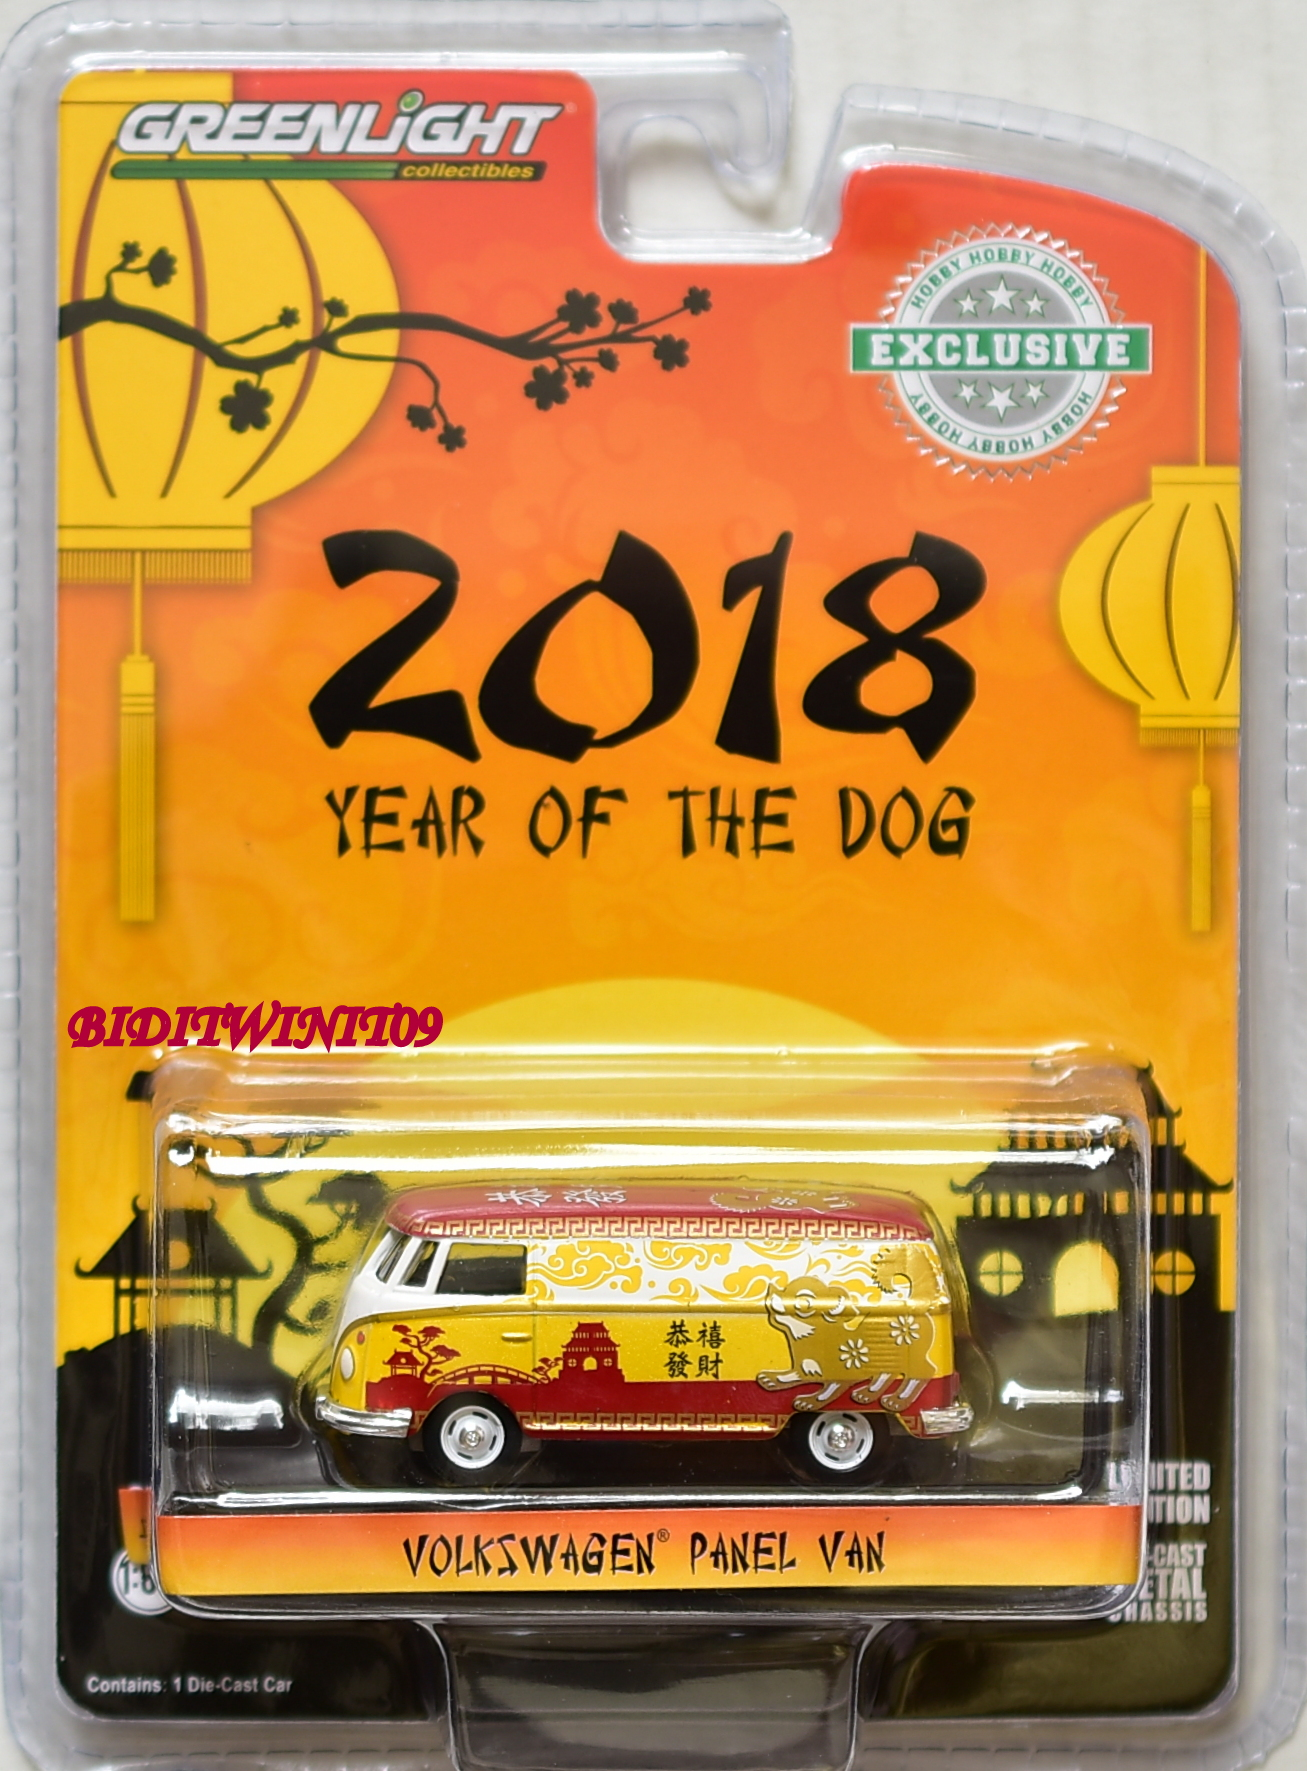 GREENLIGHT HOBBY EXCLUSIVE 2018 YEAR OF THE DOG VOLKSWAGEN PANEL VAN